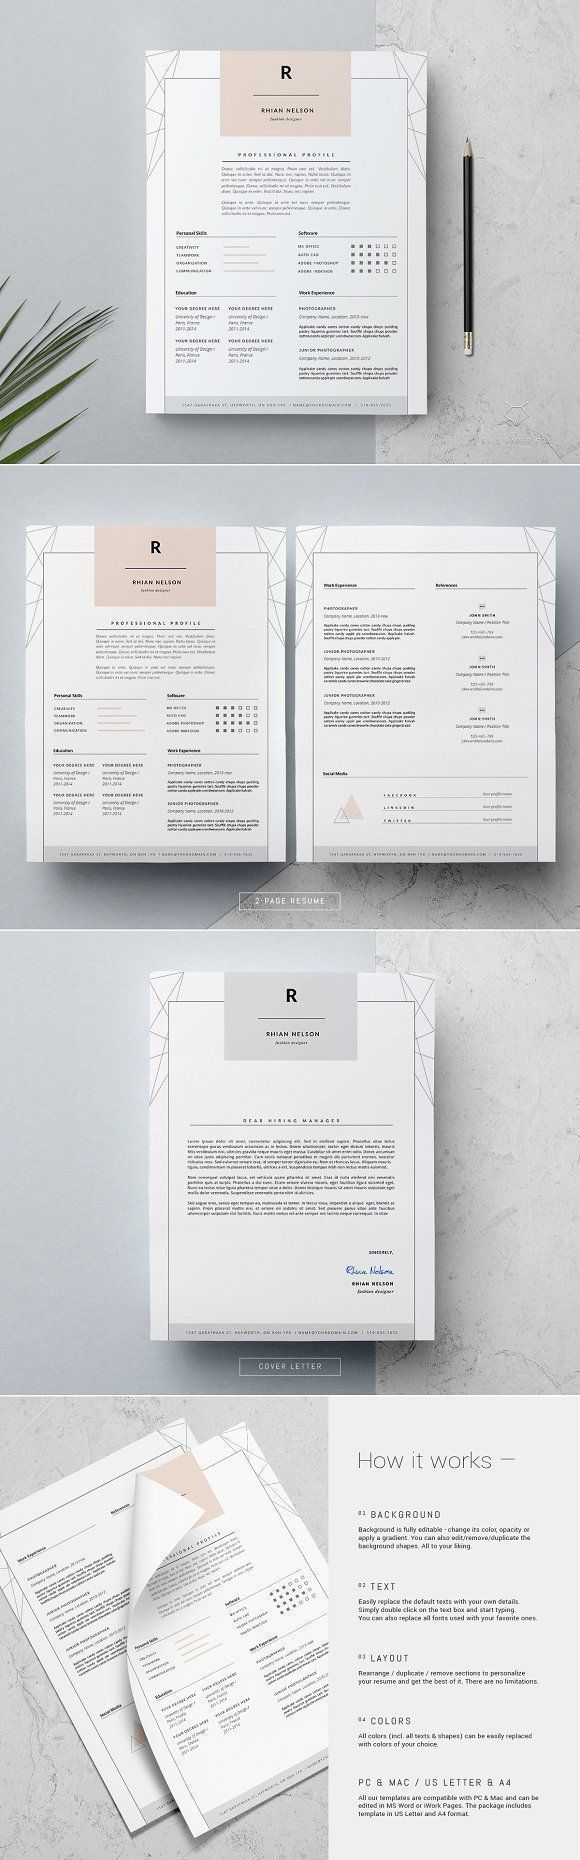 Pin by Example cover letter on Tutor